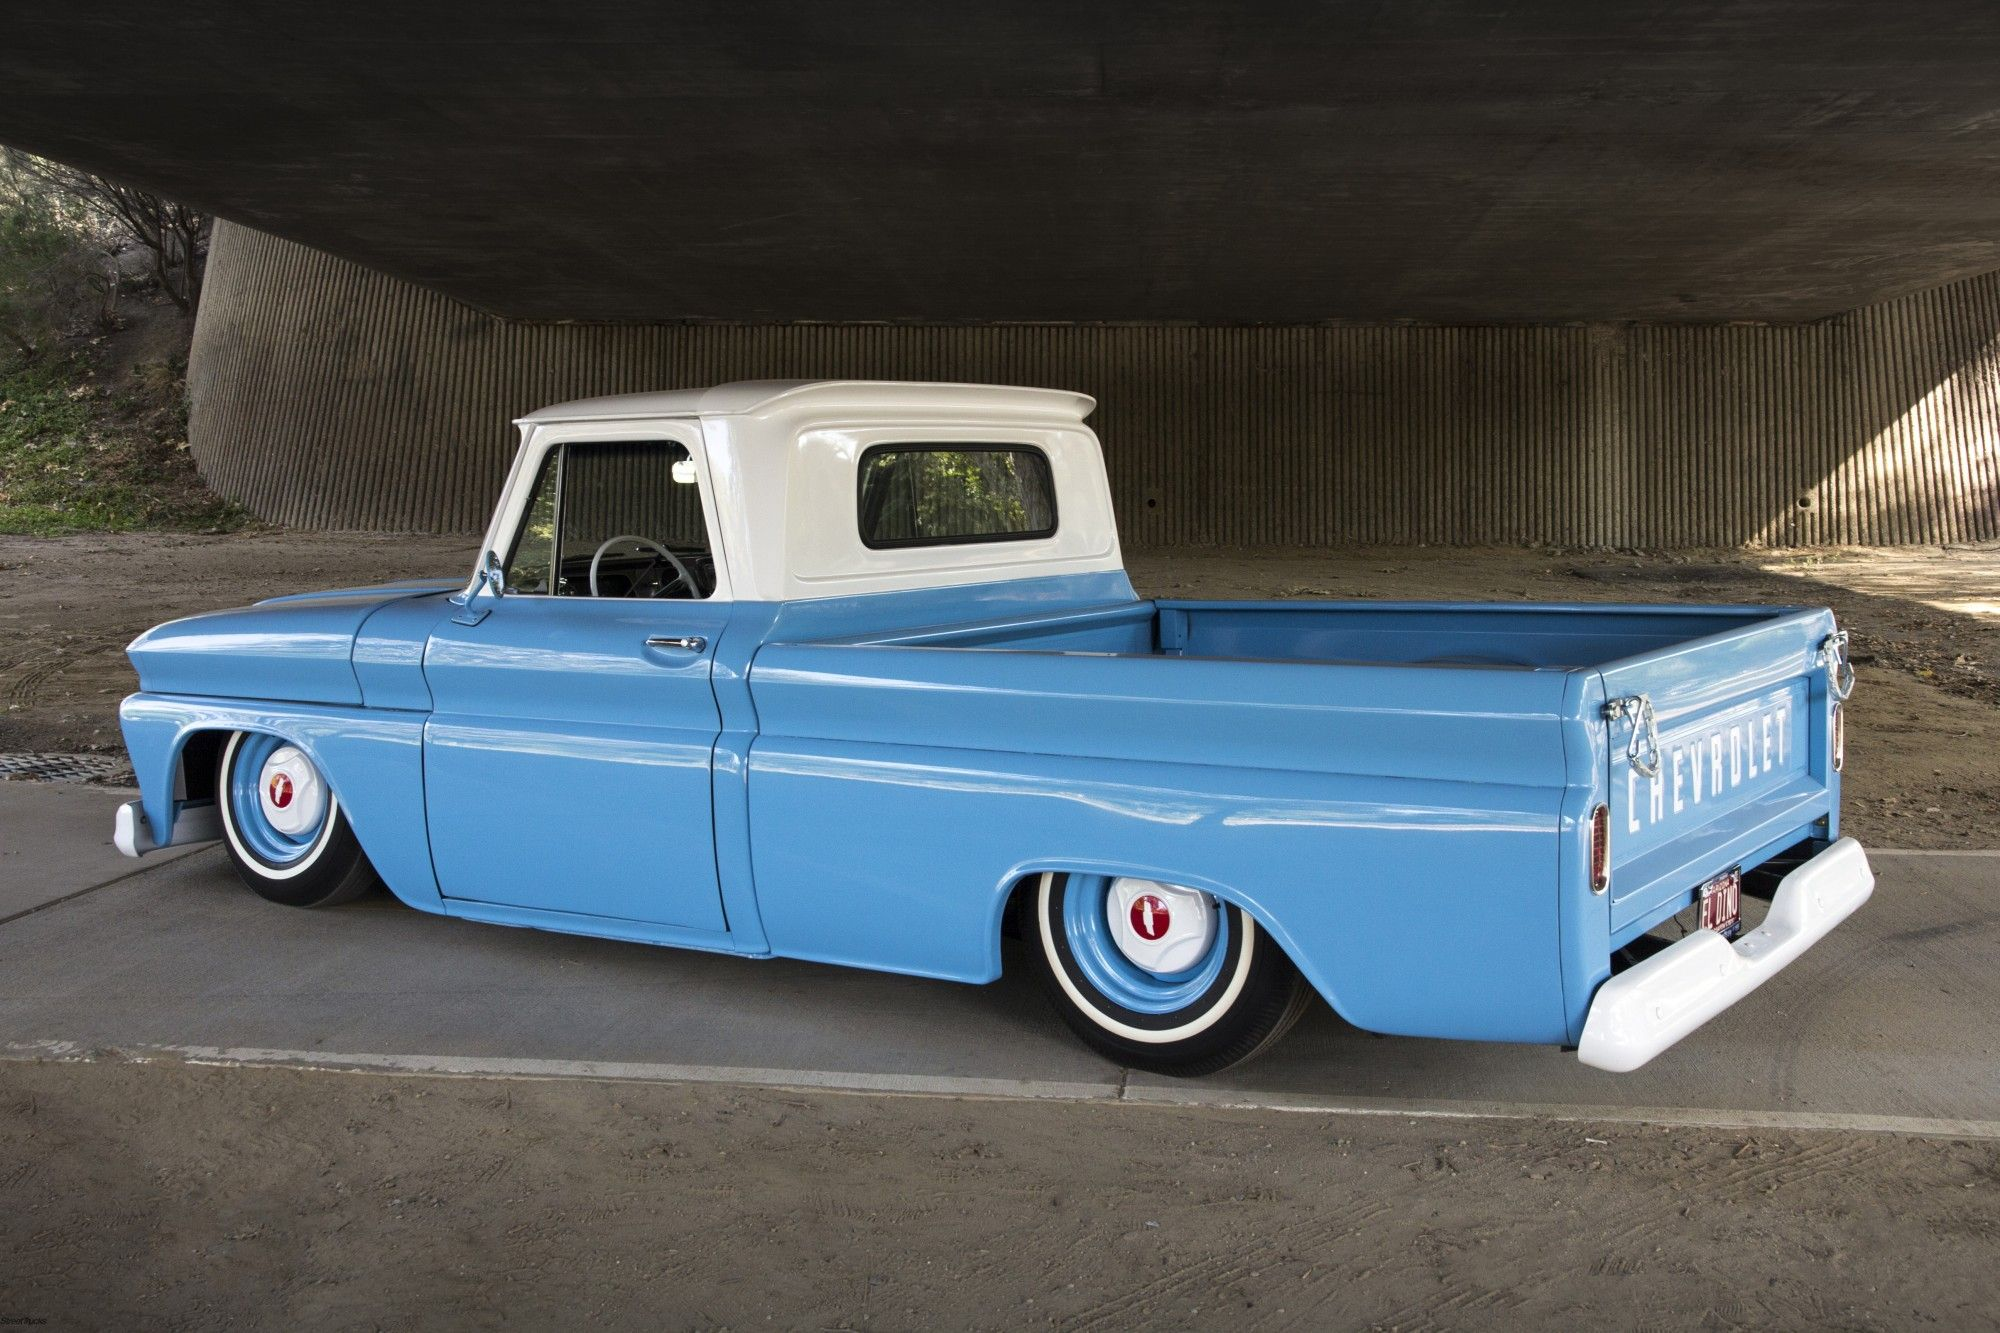 64 Chevy C 10 Google Search With Images Chevy Trucks Chevy